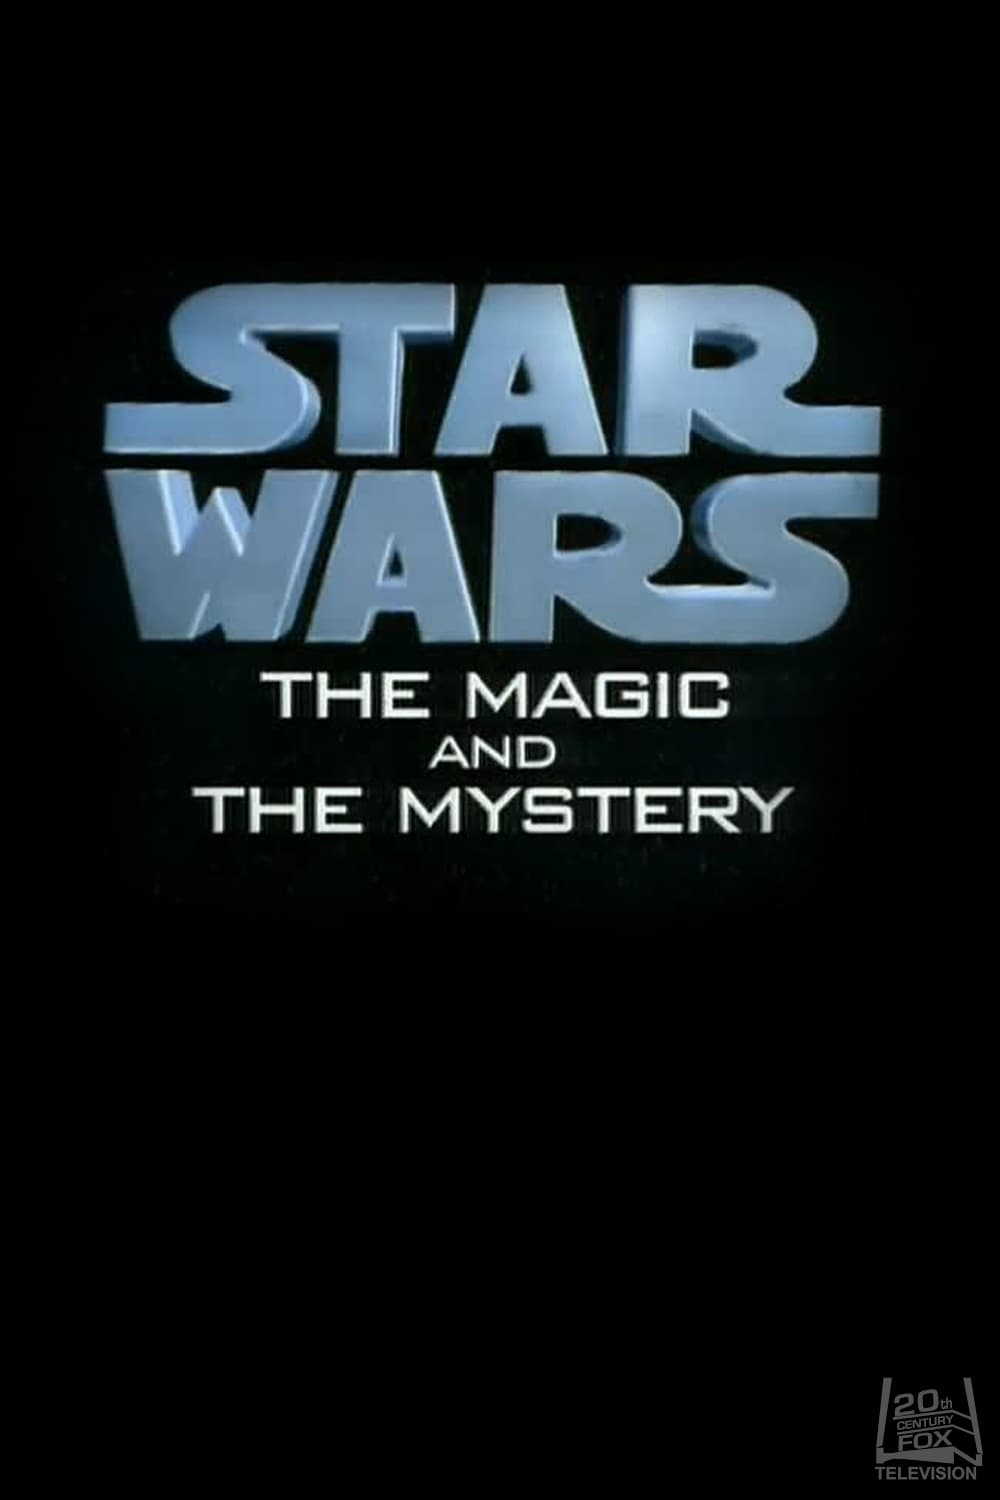 Star Wars: The Magic & the Mystery (1997)